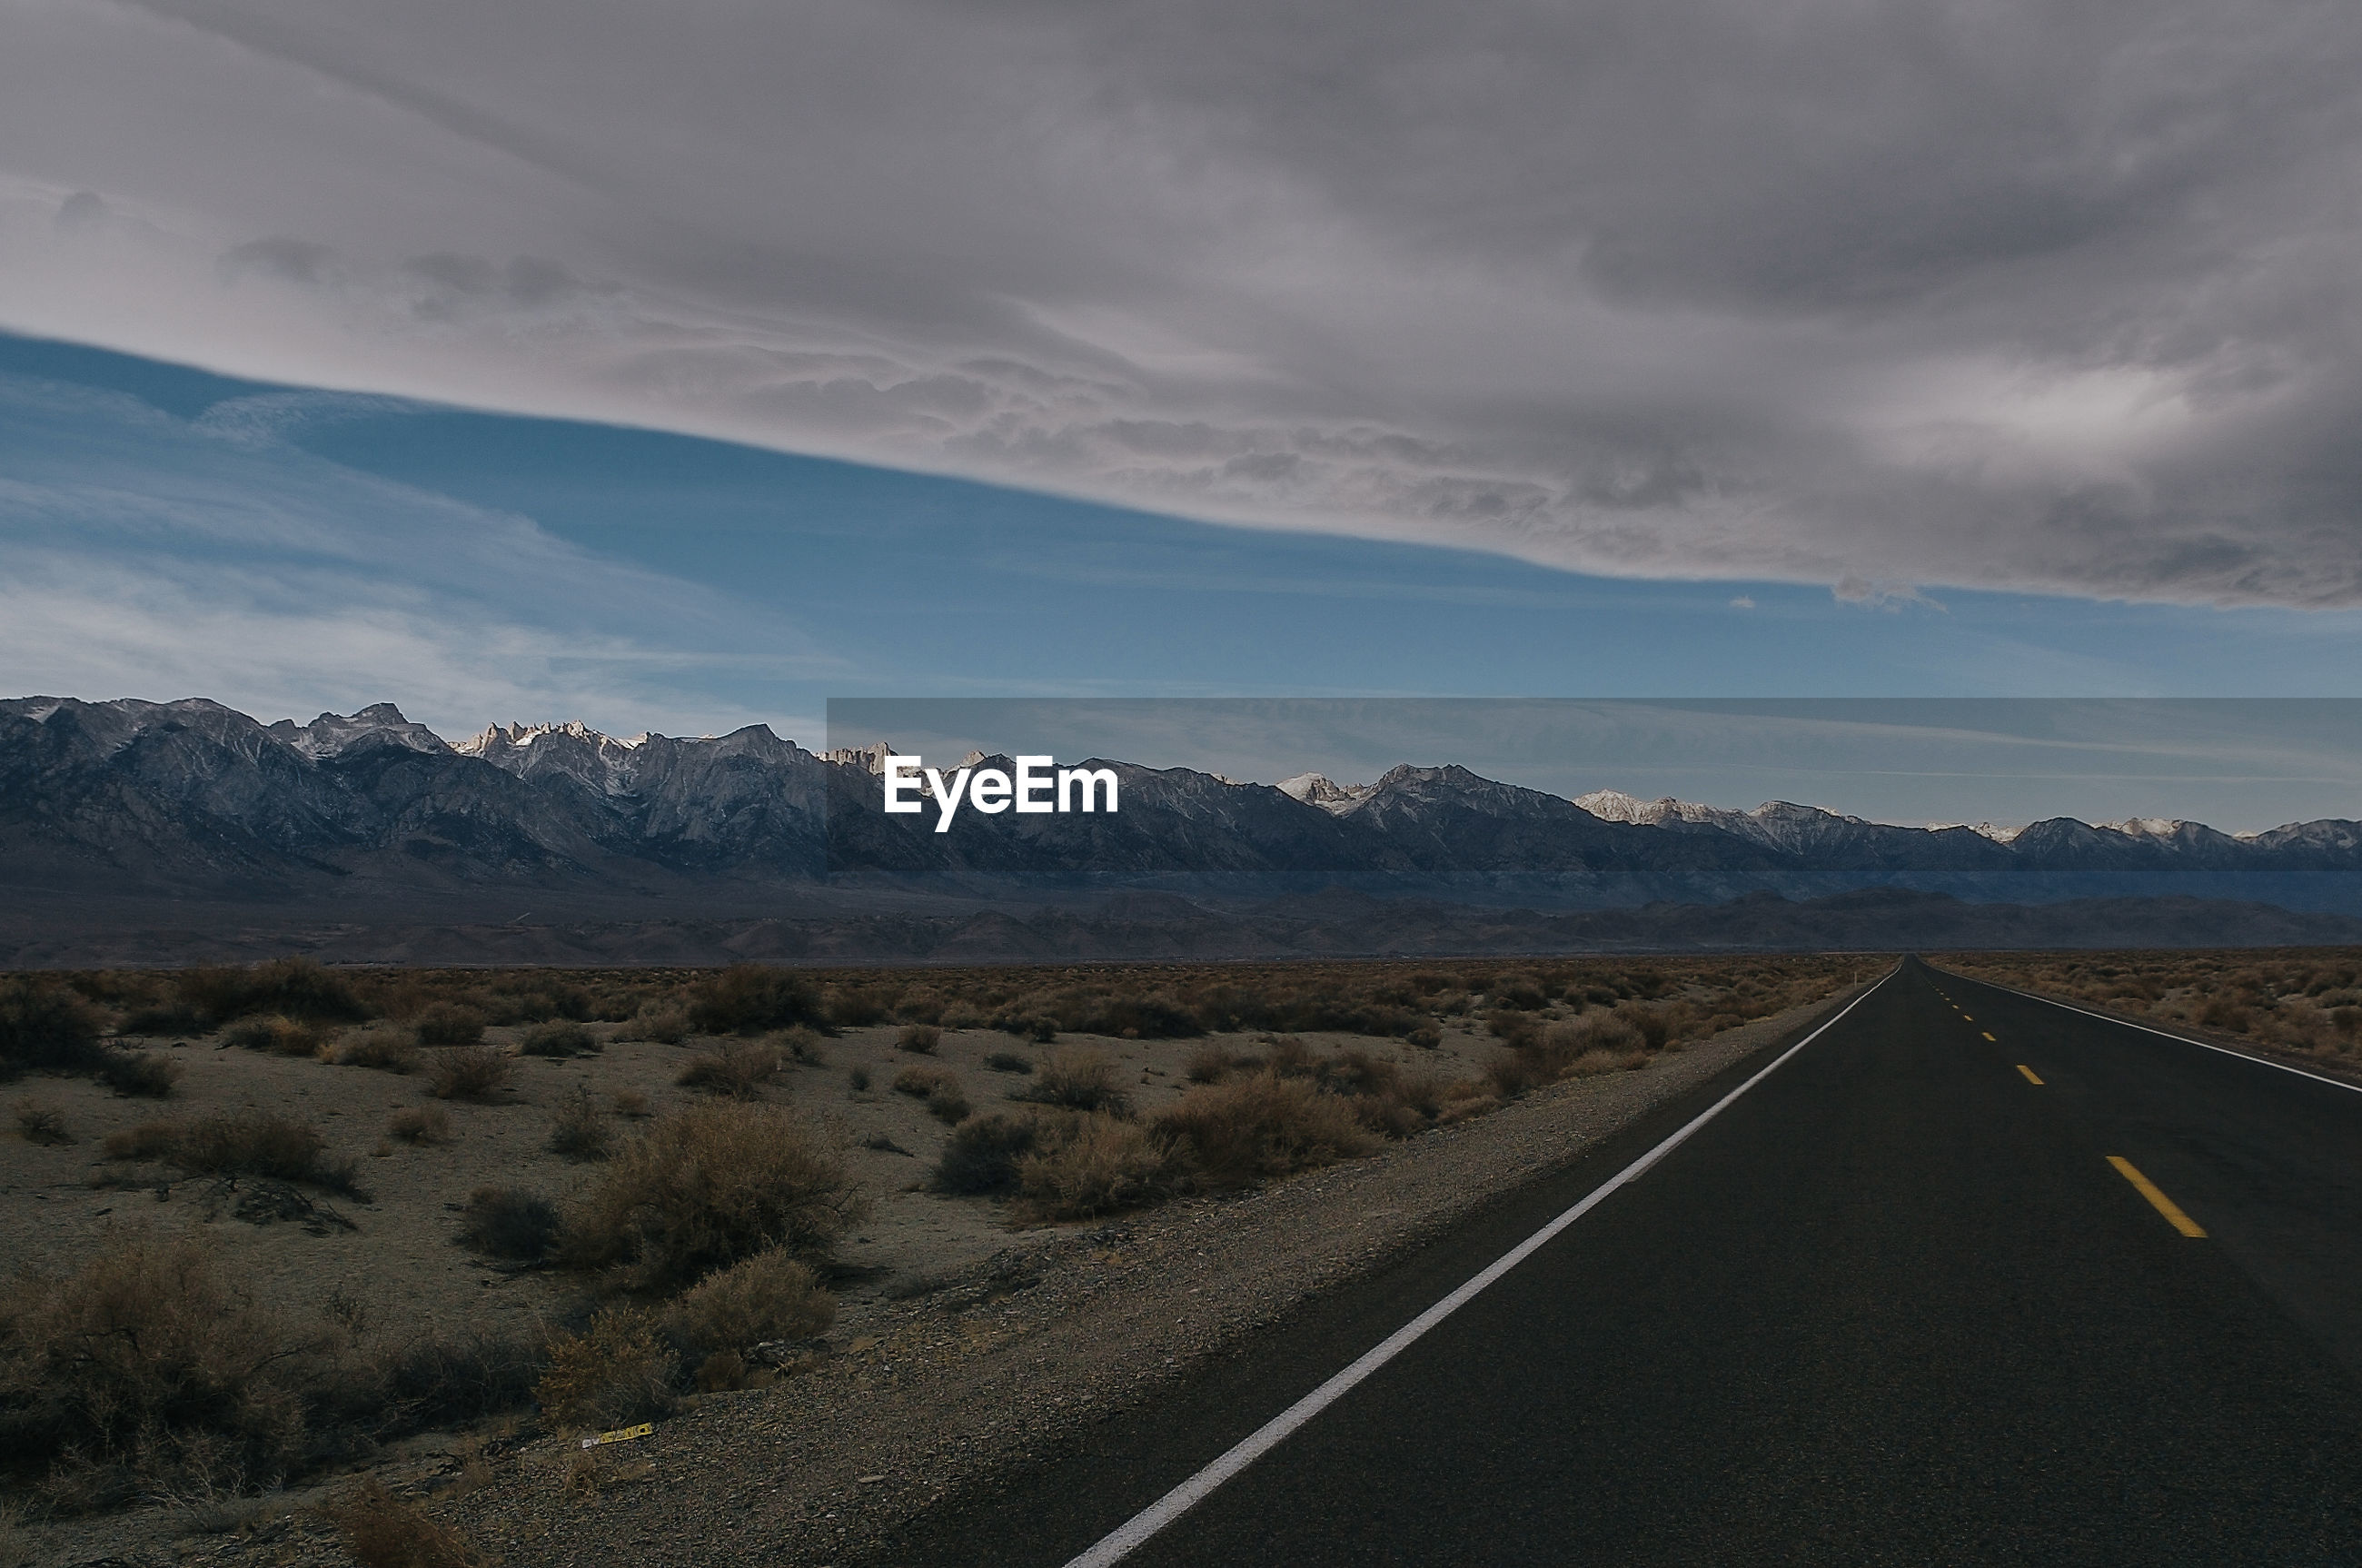 Empty road amidst landscape leading towards mountains against cloudy sky